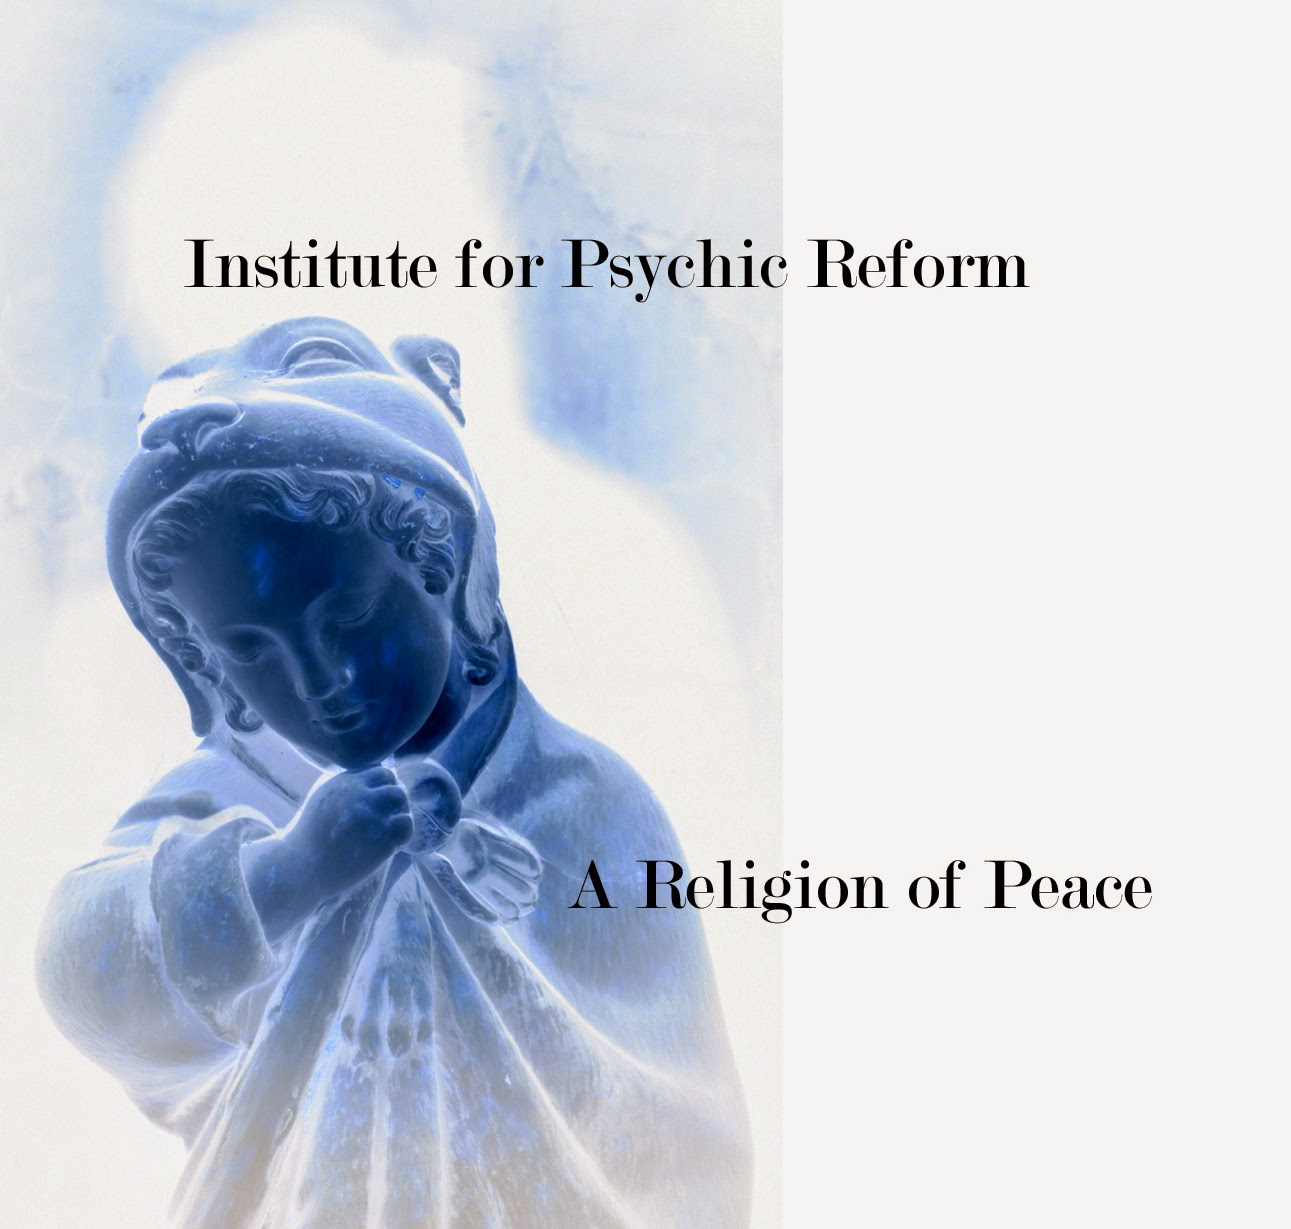 http://psychicreform.com/music/2015/rpm_challenge_2015_a_religion_of_peace/index.html